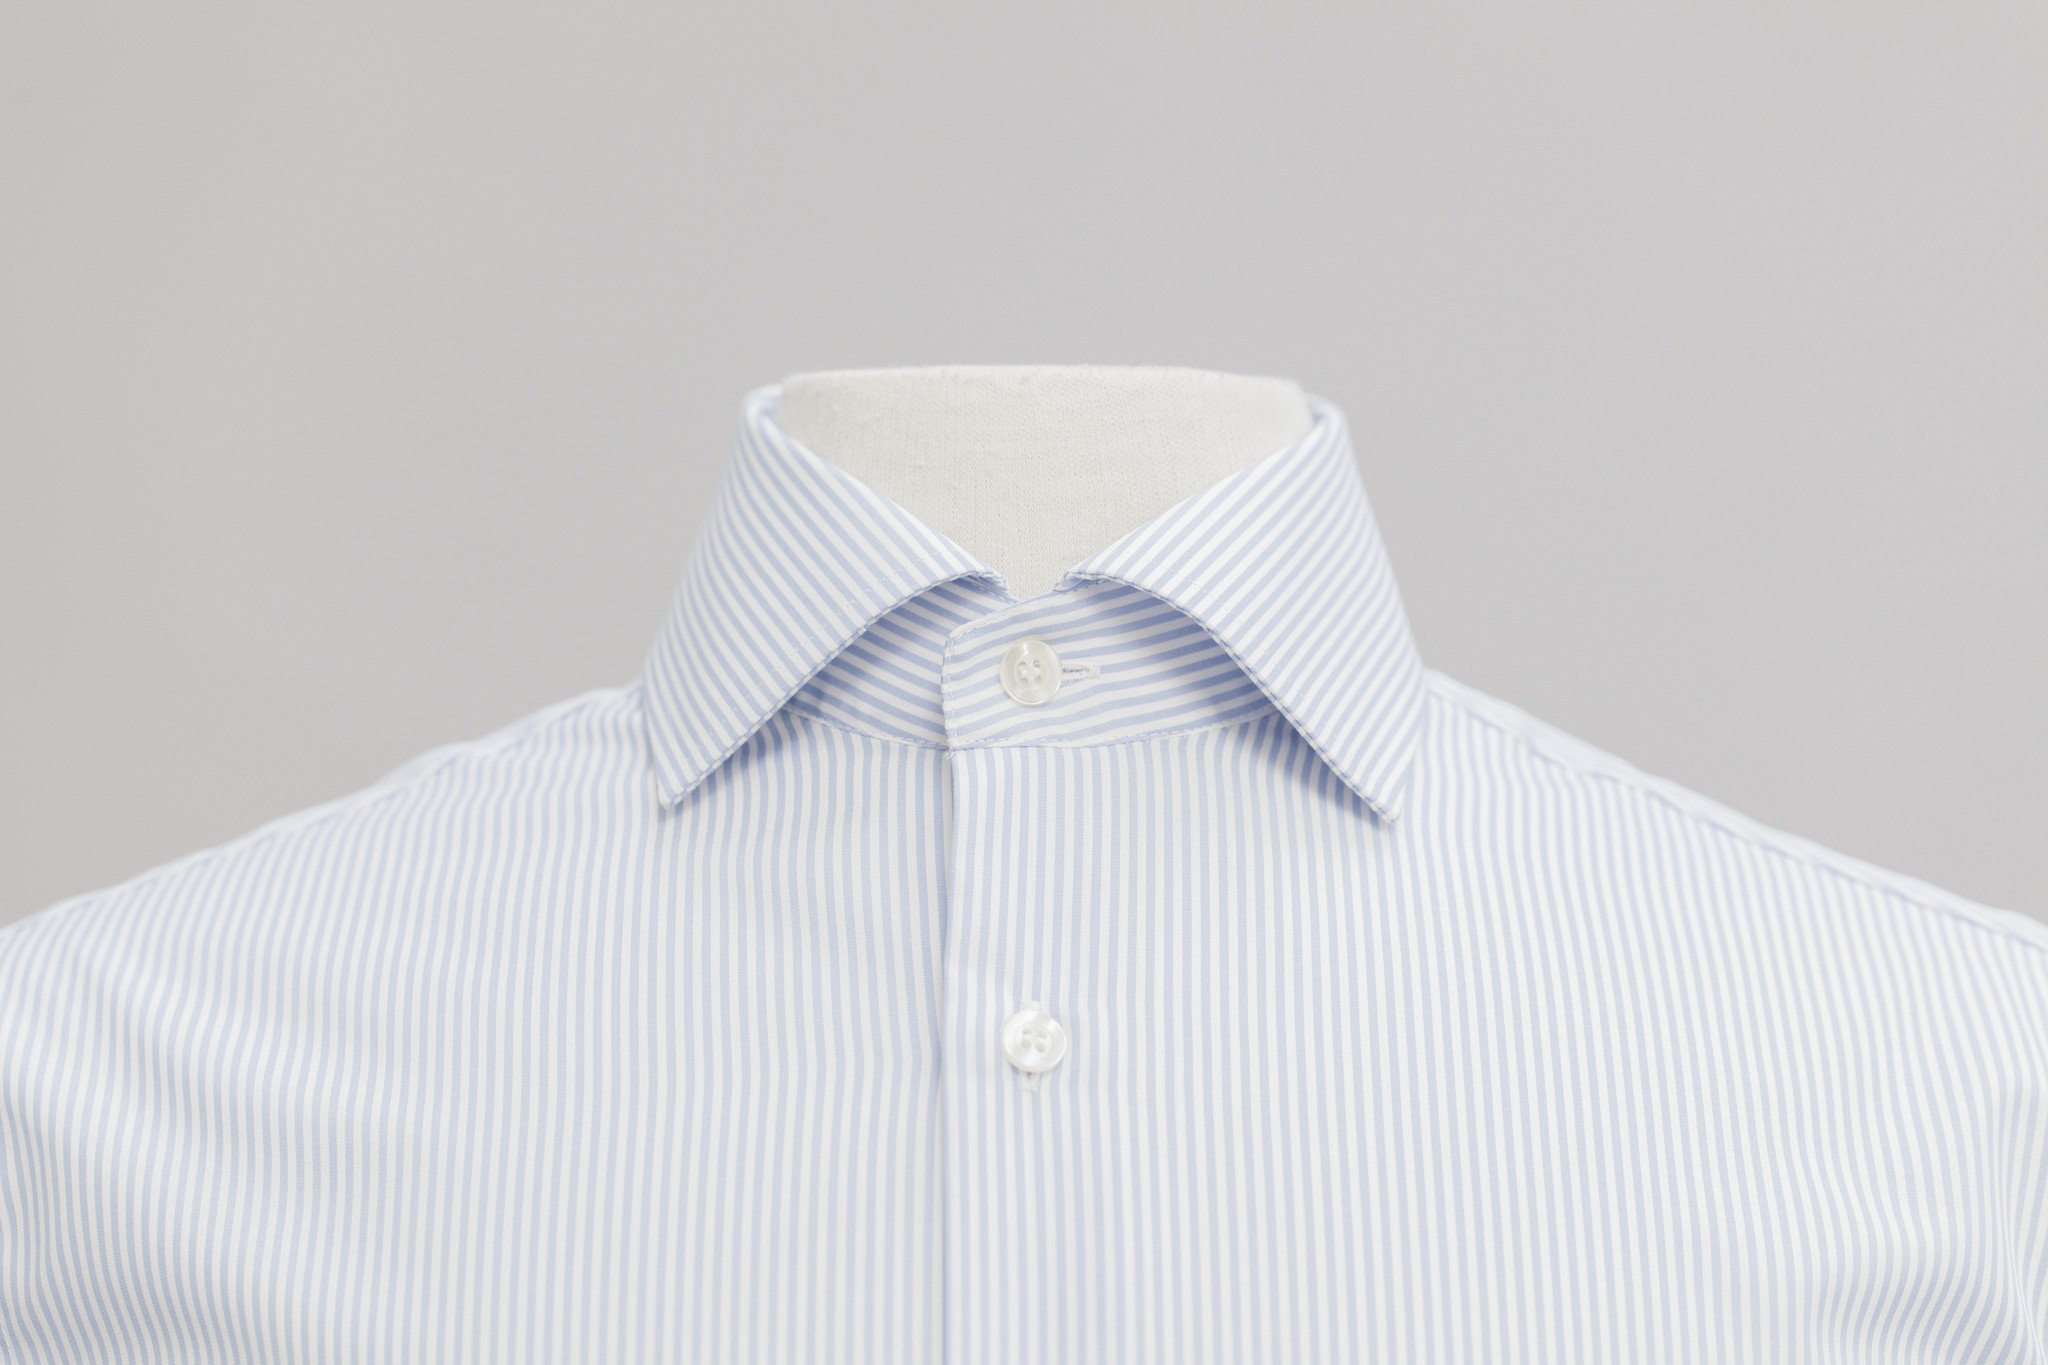 Smyth & Gibson Non-Iron Bengal Stripe Contemporary Fit Shirt in Sky Blue